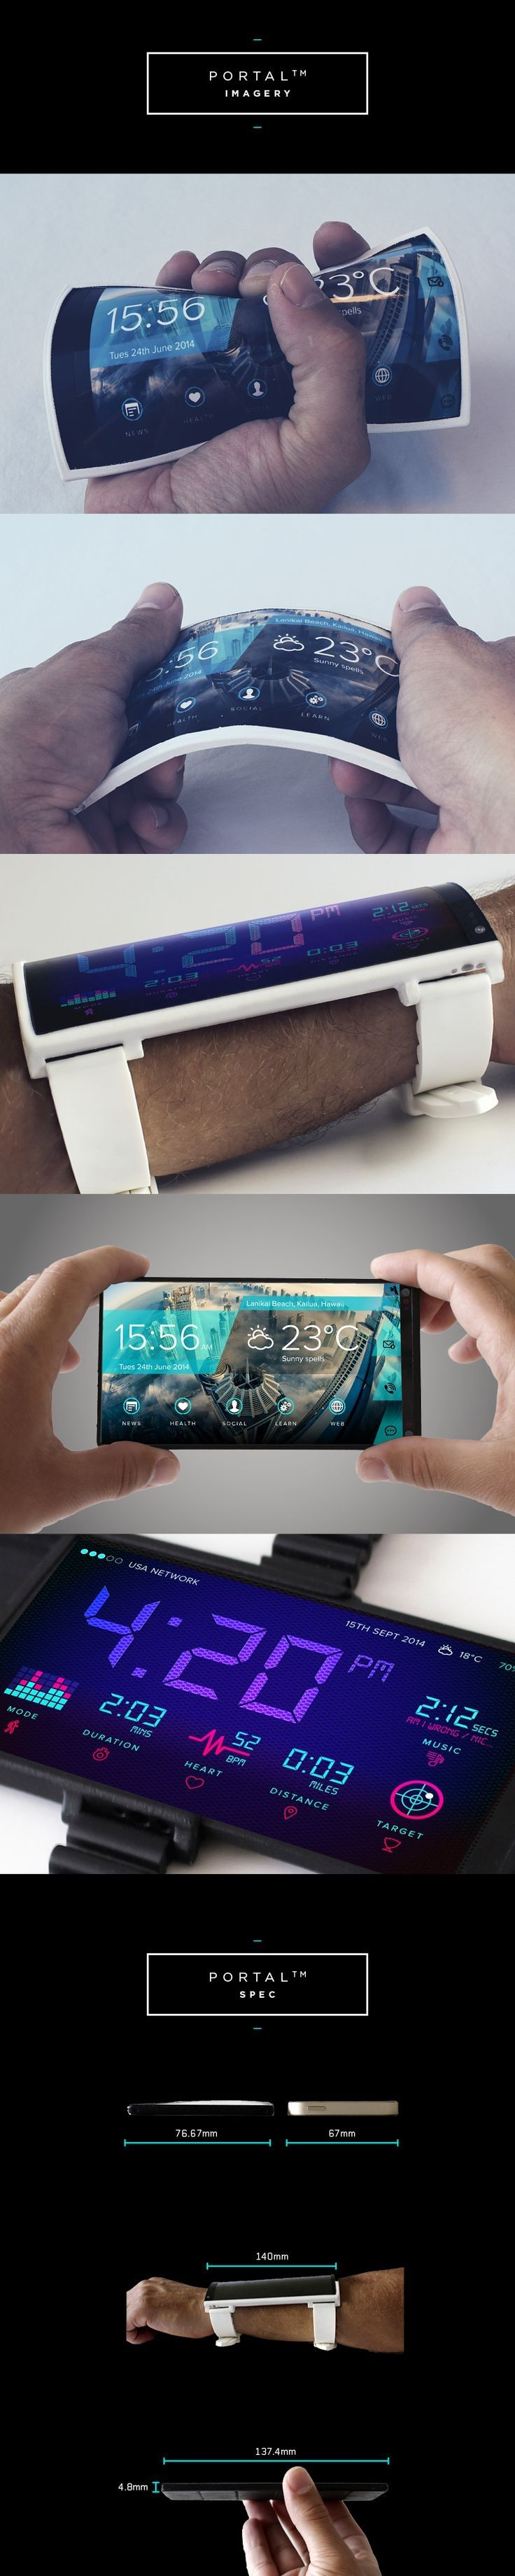 Portable wearable #smartphone portable #technology tech technology ideas smartphone